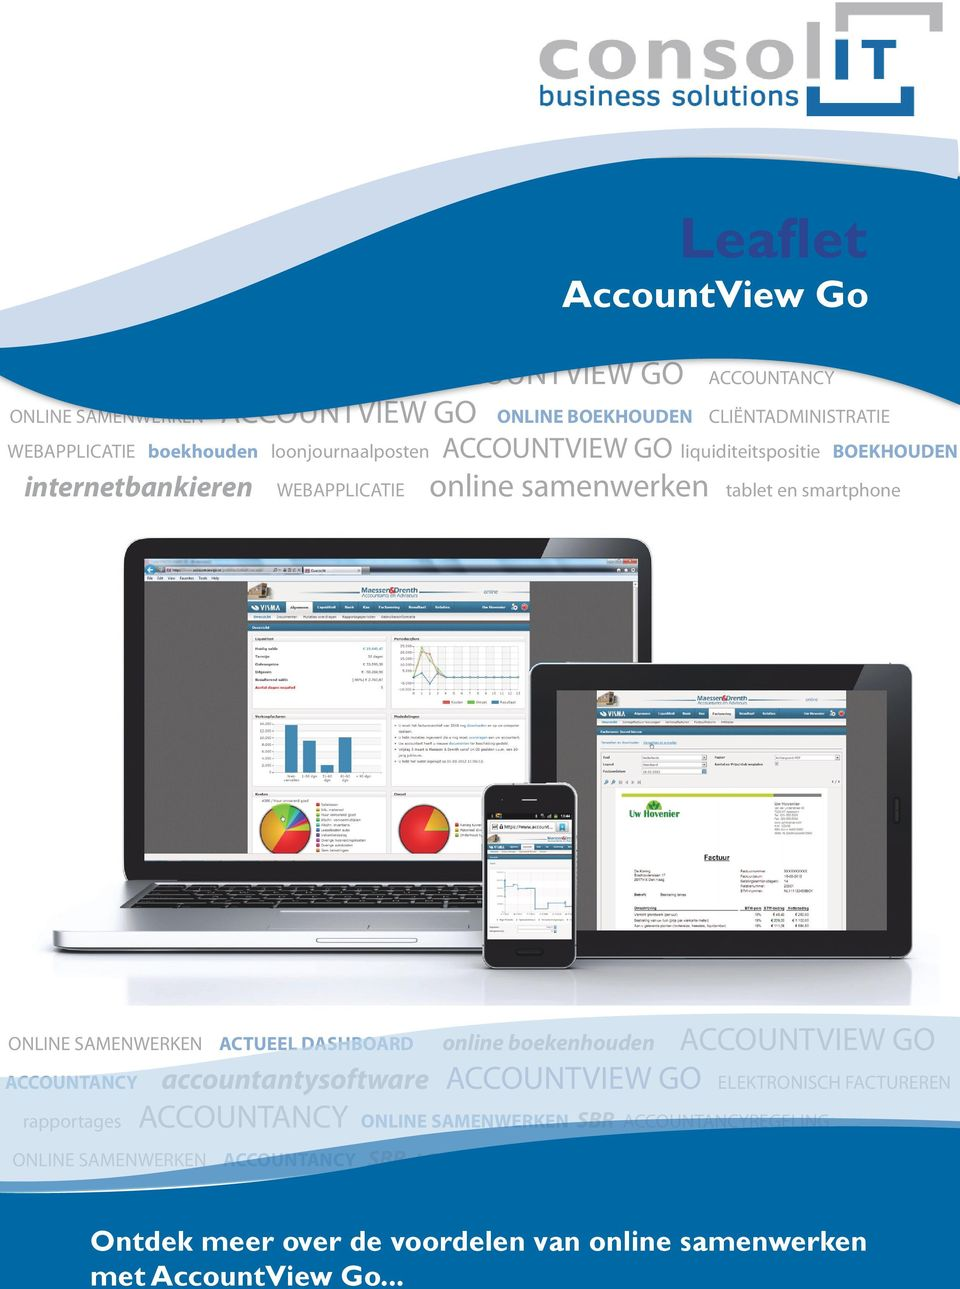 ACCOUNTVIEW GO ACCOUNTANCY SBR ACCOUNTANCYREGELING SAMENSTELPRAKTIJK ACCOUNTVIEW GO ACCOUNTANCY SBR ACCOUNTANCYREGELING ONLINE SAMENWERKEN ACTUEEL DASHBOARD online boekenhouden ACCOUNTVIEW GO